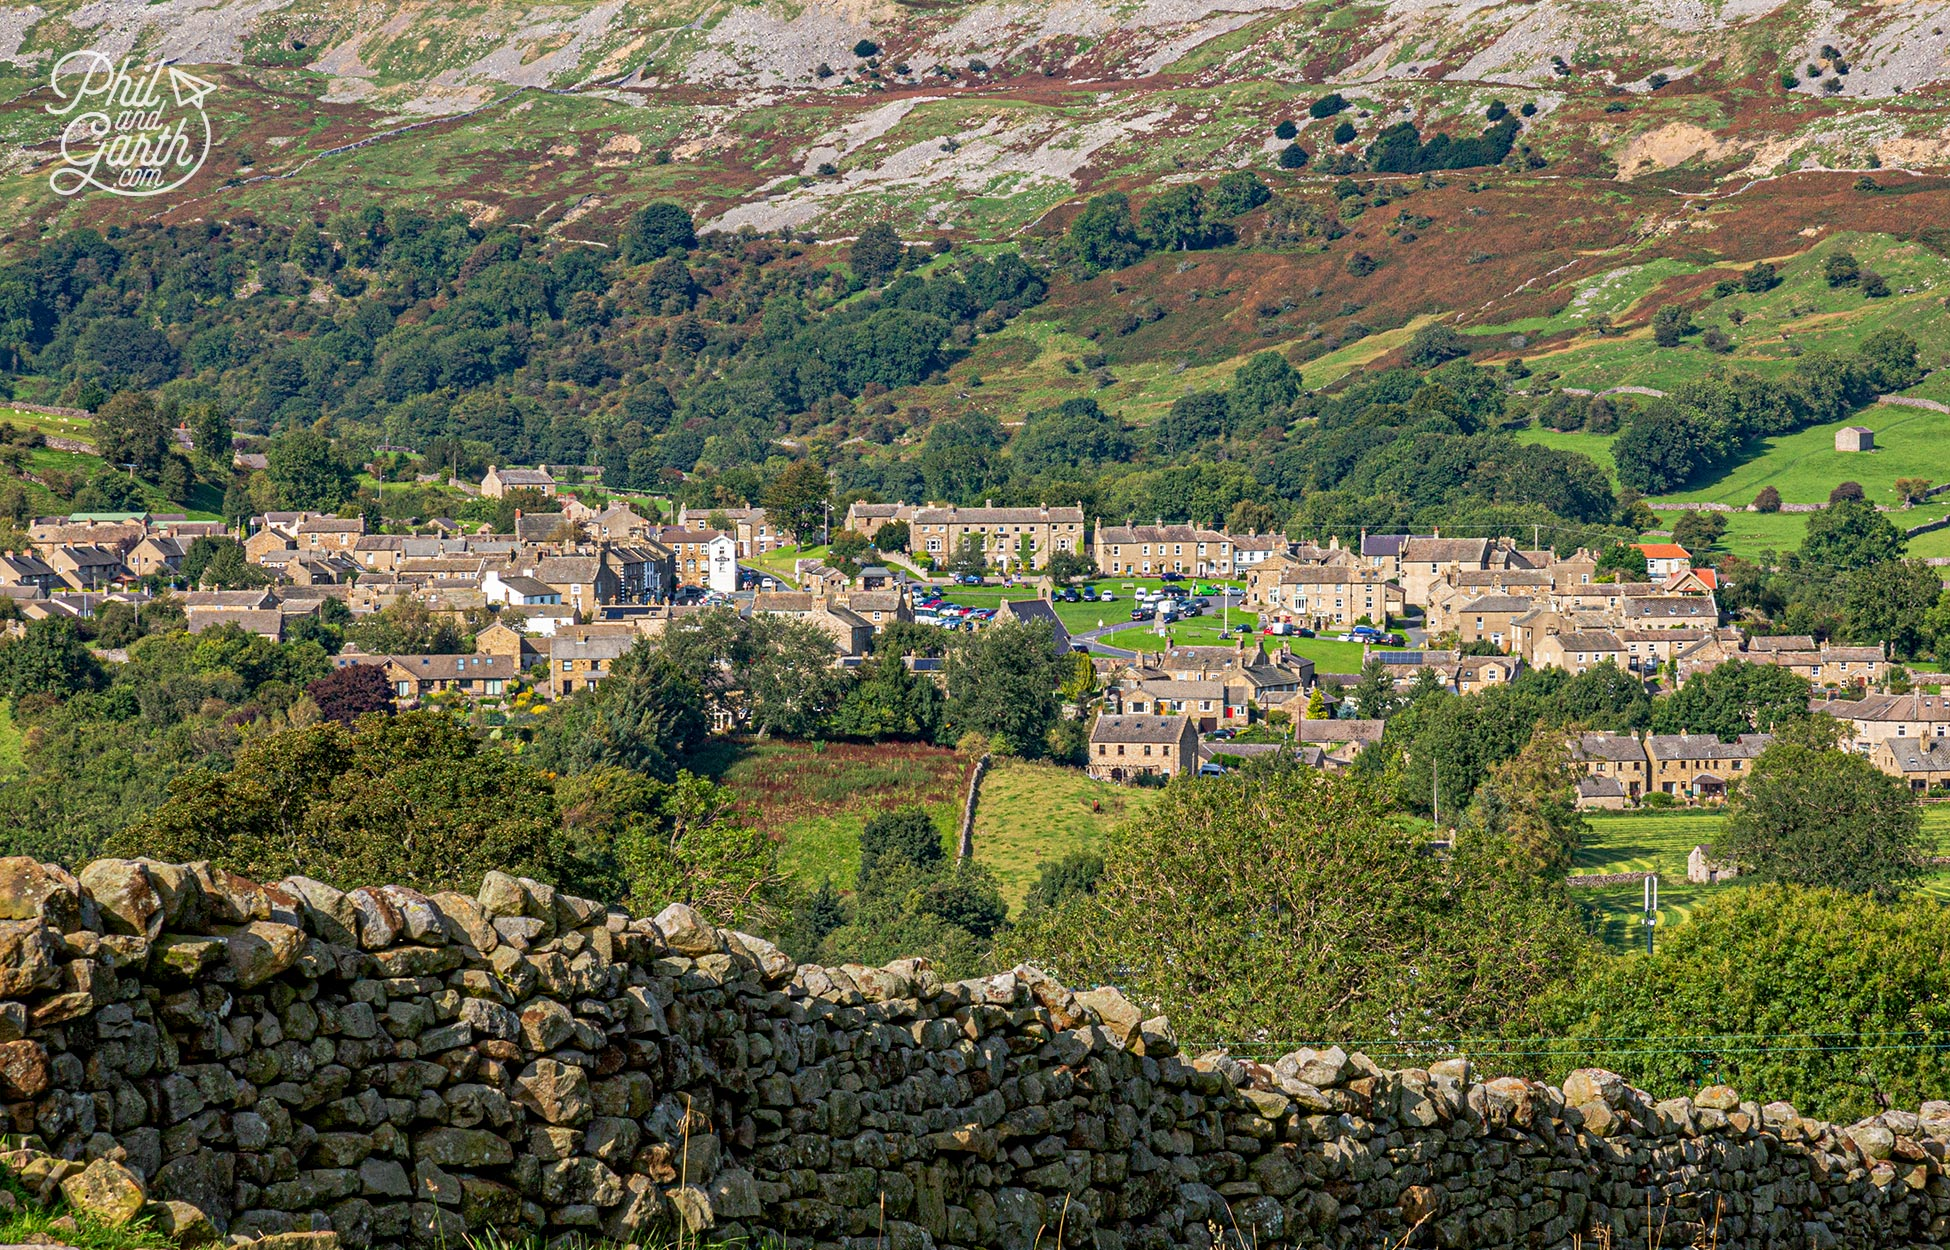 Reeth is the main village of Swaledale, another of the best Yorkshire Dales villages